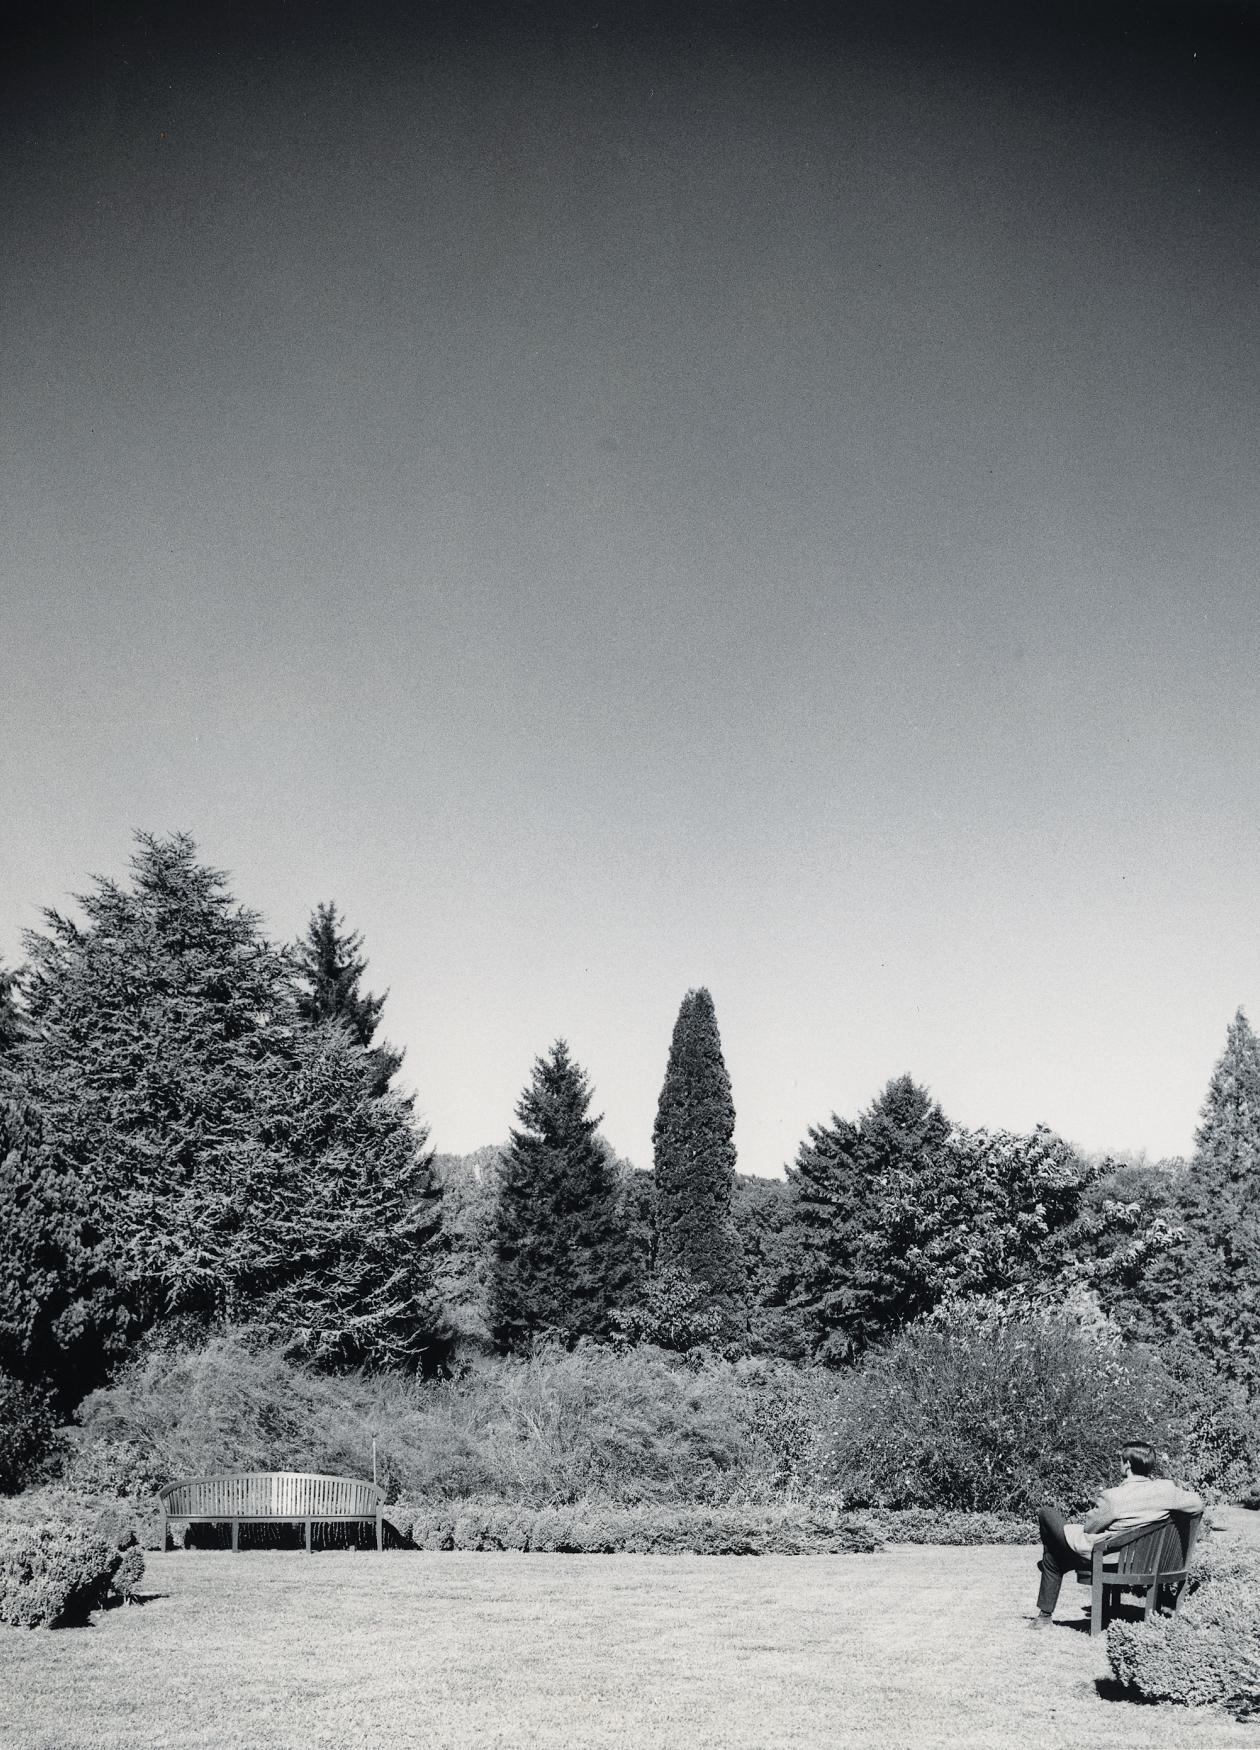 black and white photo of a large garden surrounding by trees, man sitting on bench